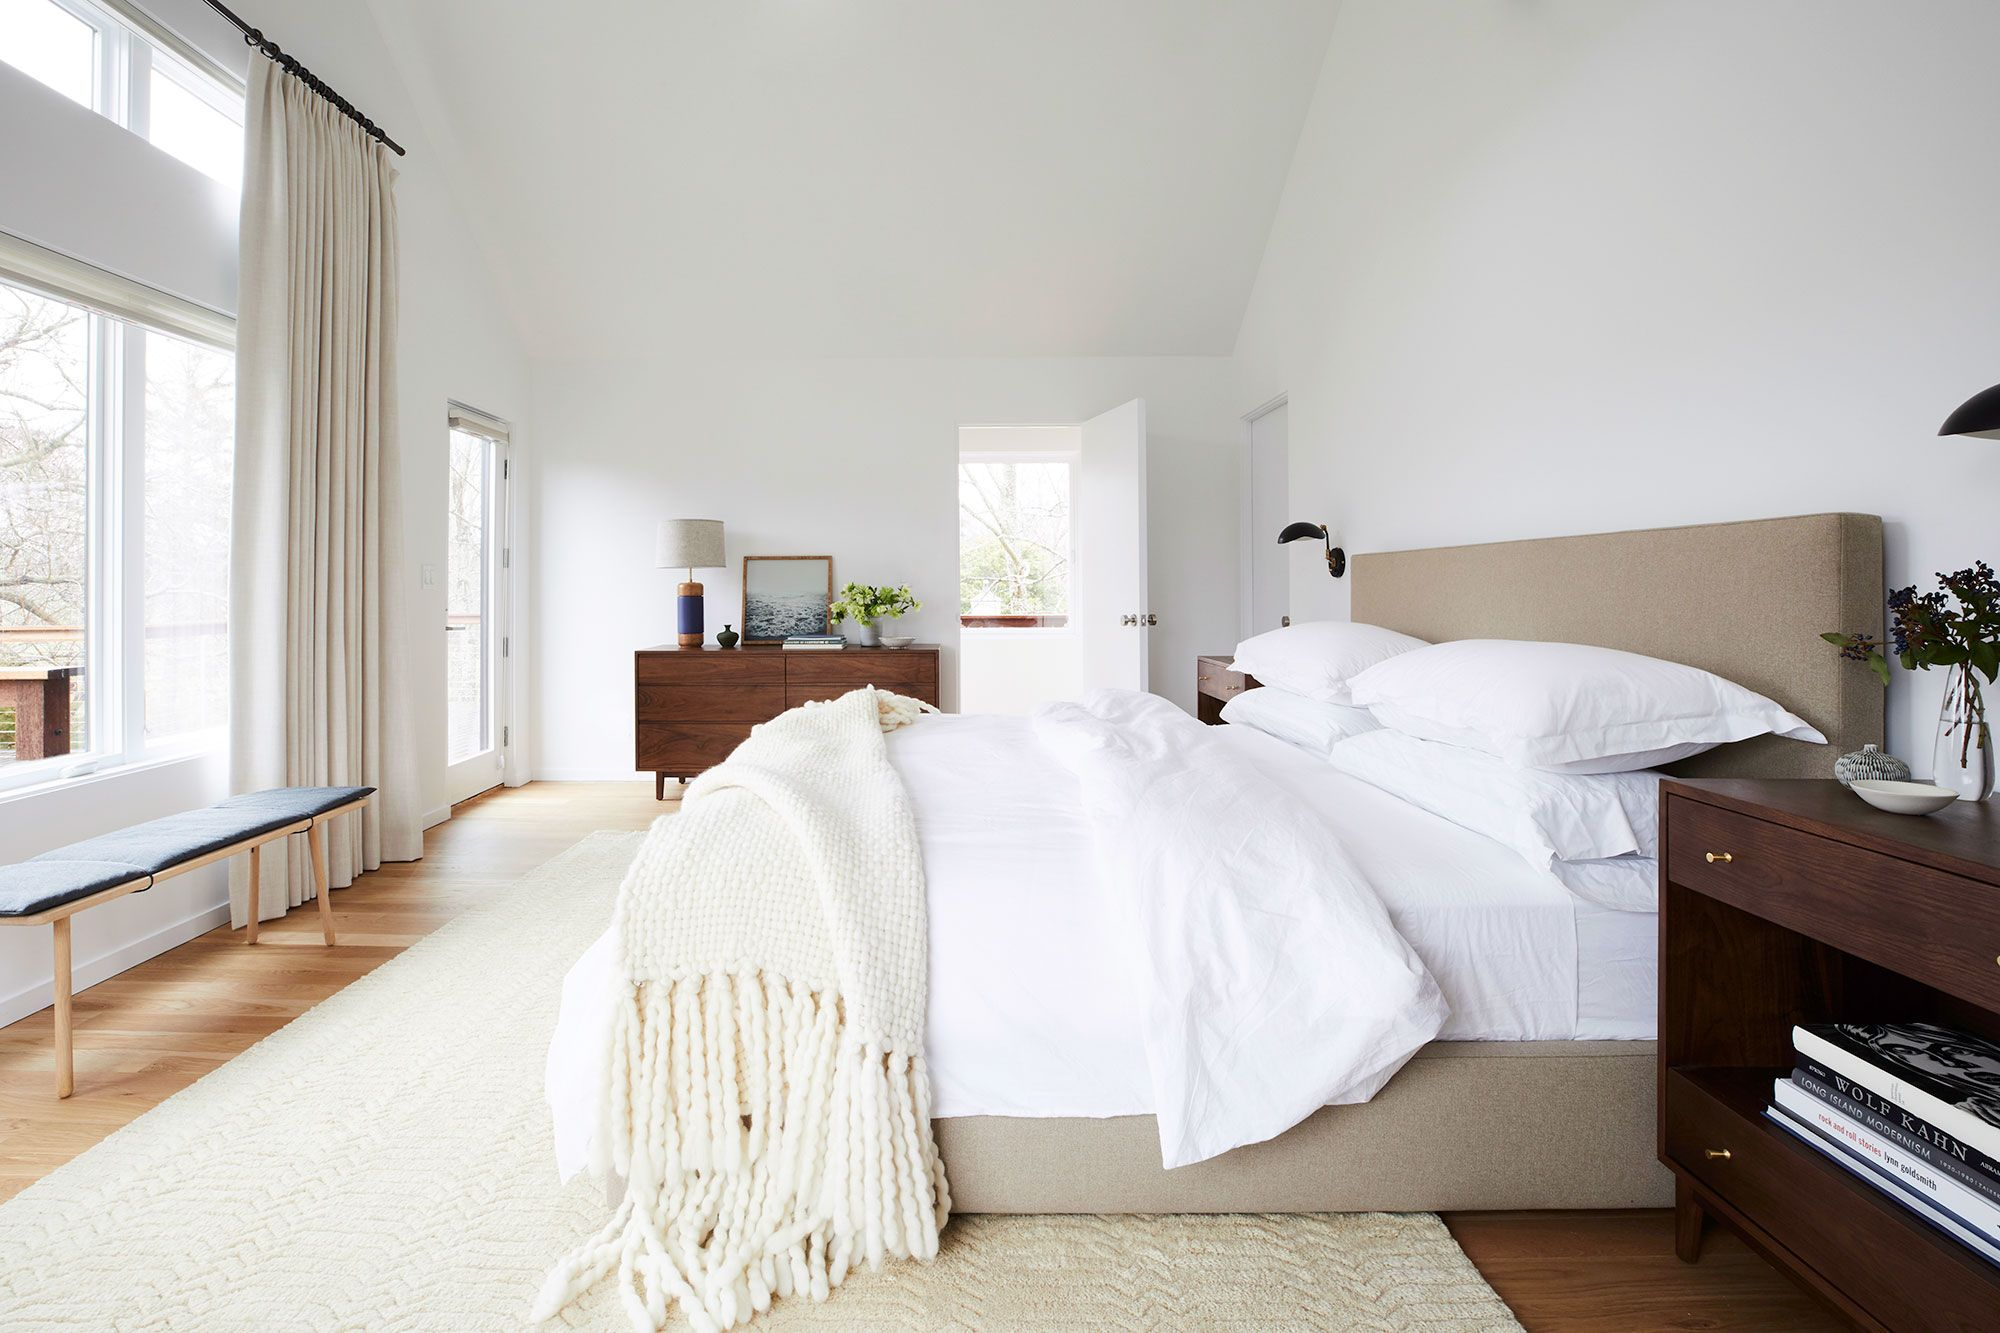 20 Cozy Bedroom Ideas How To Make Your Bedroom Feel Cozy